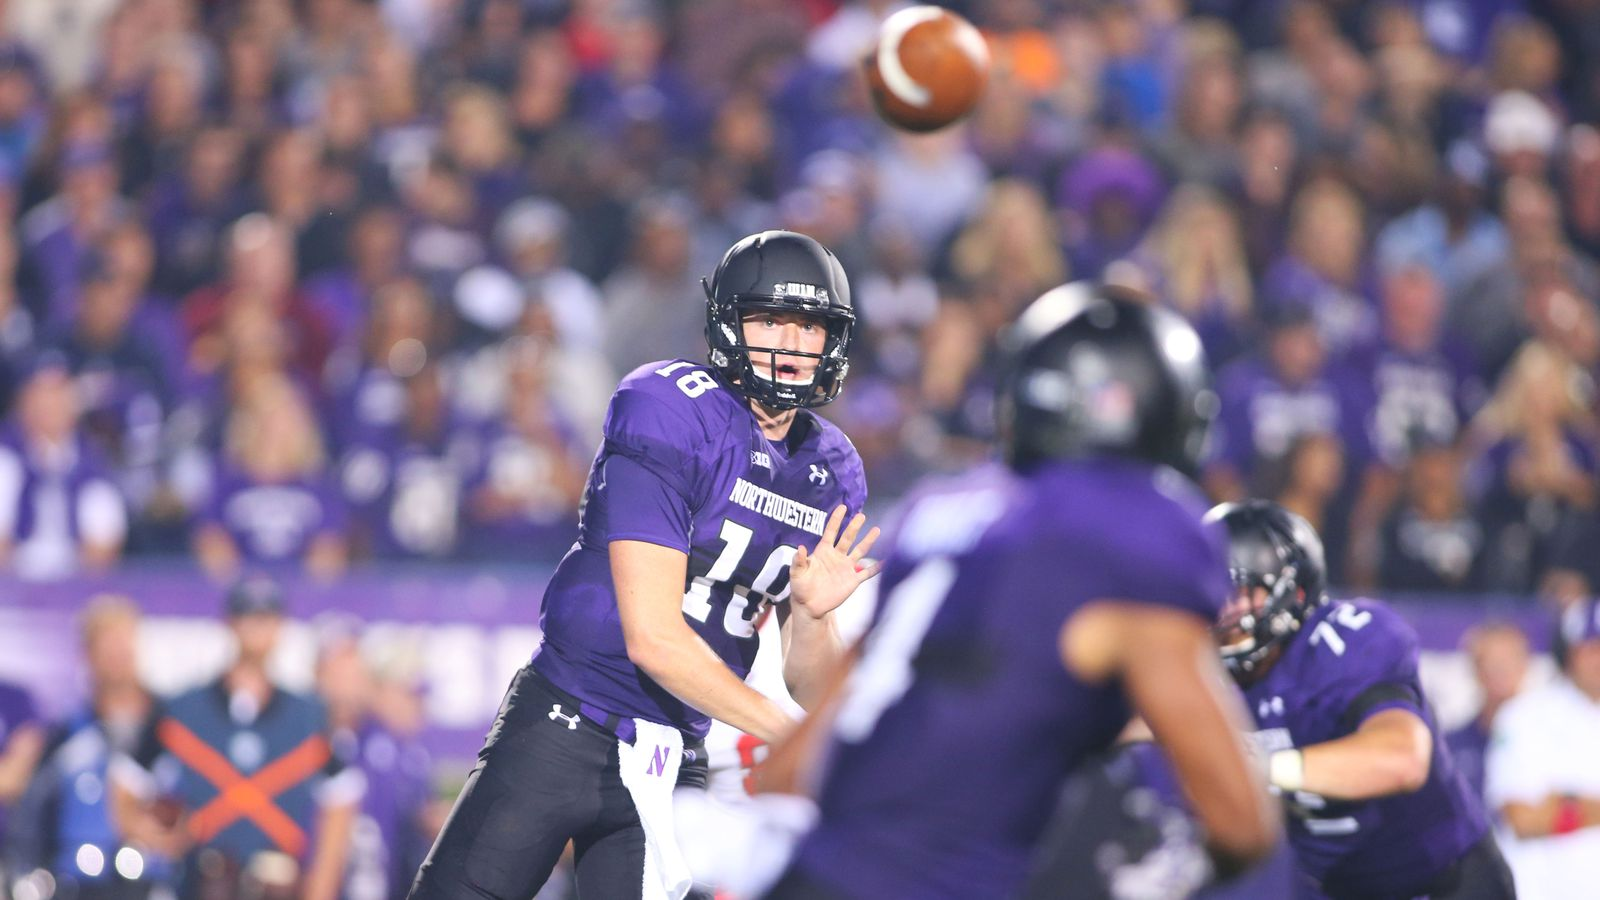 Nike jerseys for wholesale - Will the real Northwestern please stand up? - Inside NU